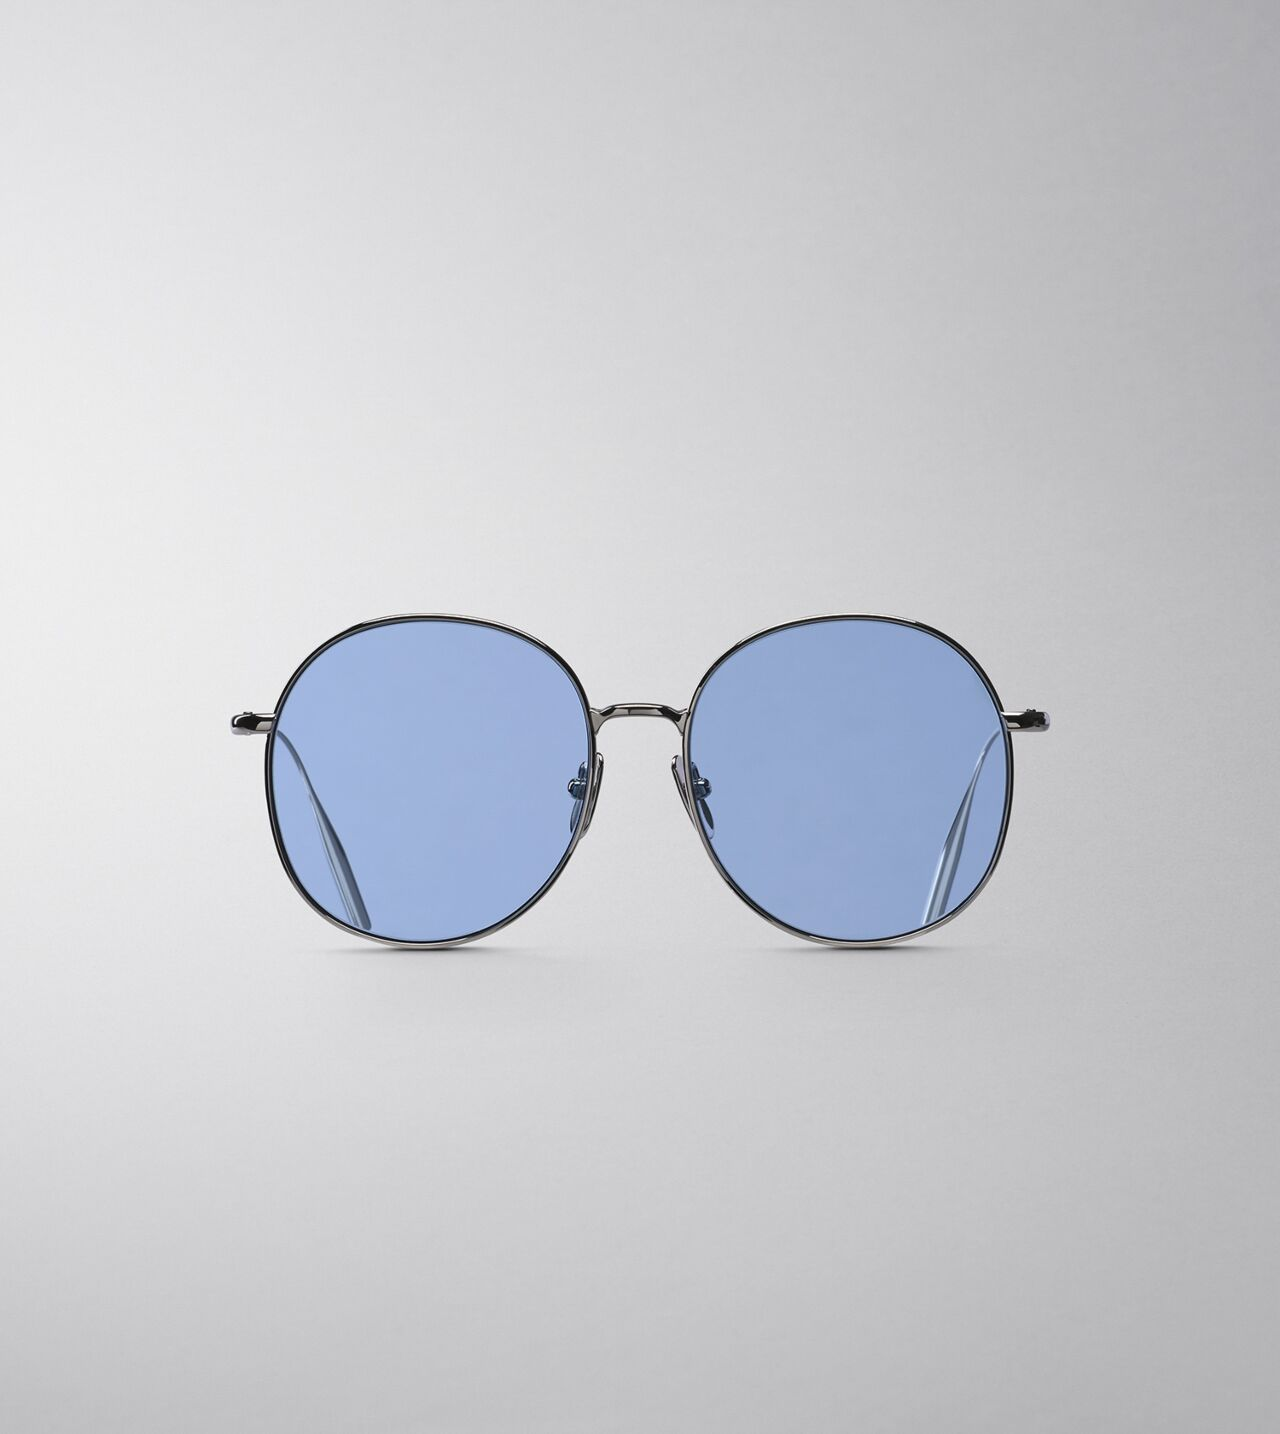 Picture of Byredo The Bohemian in Palladium blue